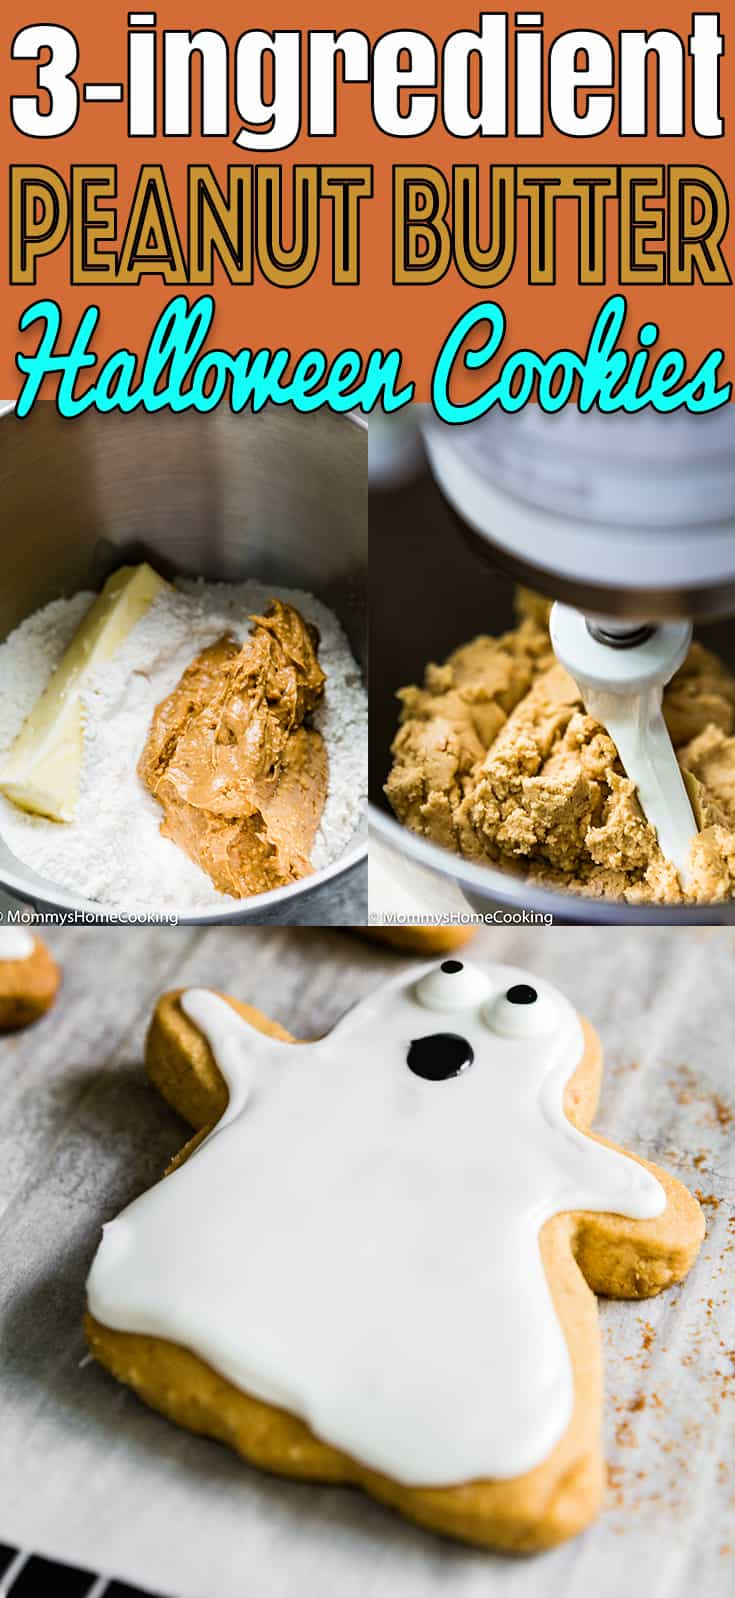 These 3-Ingredient Eggless Peanut Butter Halloween Cookies are easy to make and delicious! These cookies really do melt in your mouth. #recipe #cookies #eggless #easy #peanutbutter #halloween